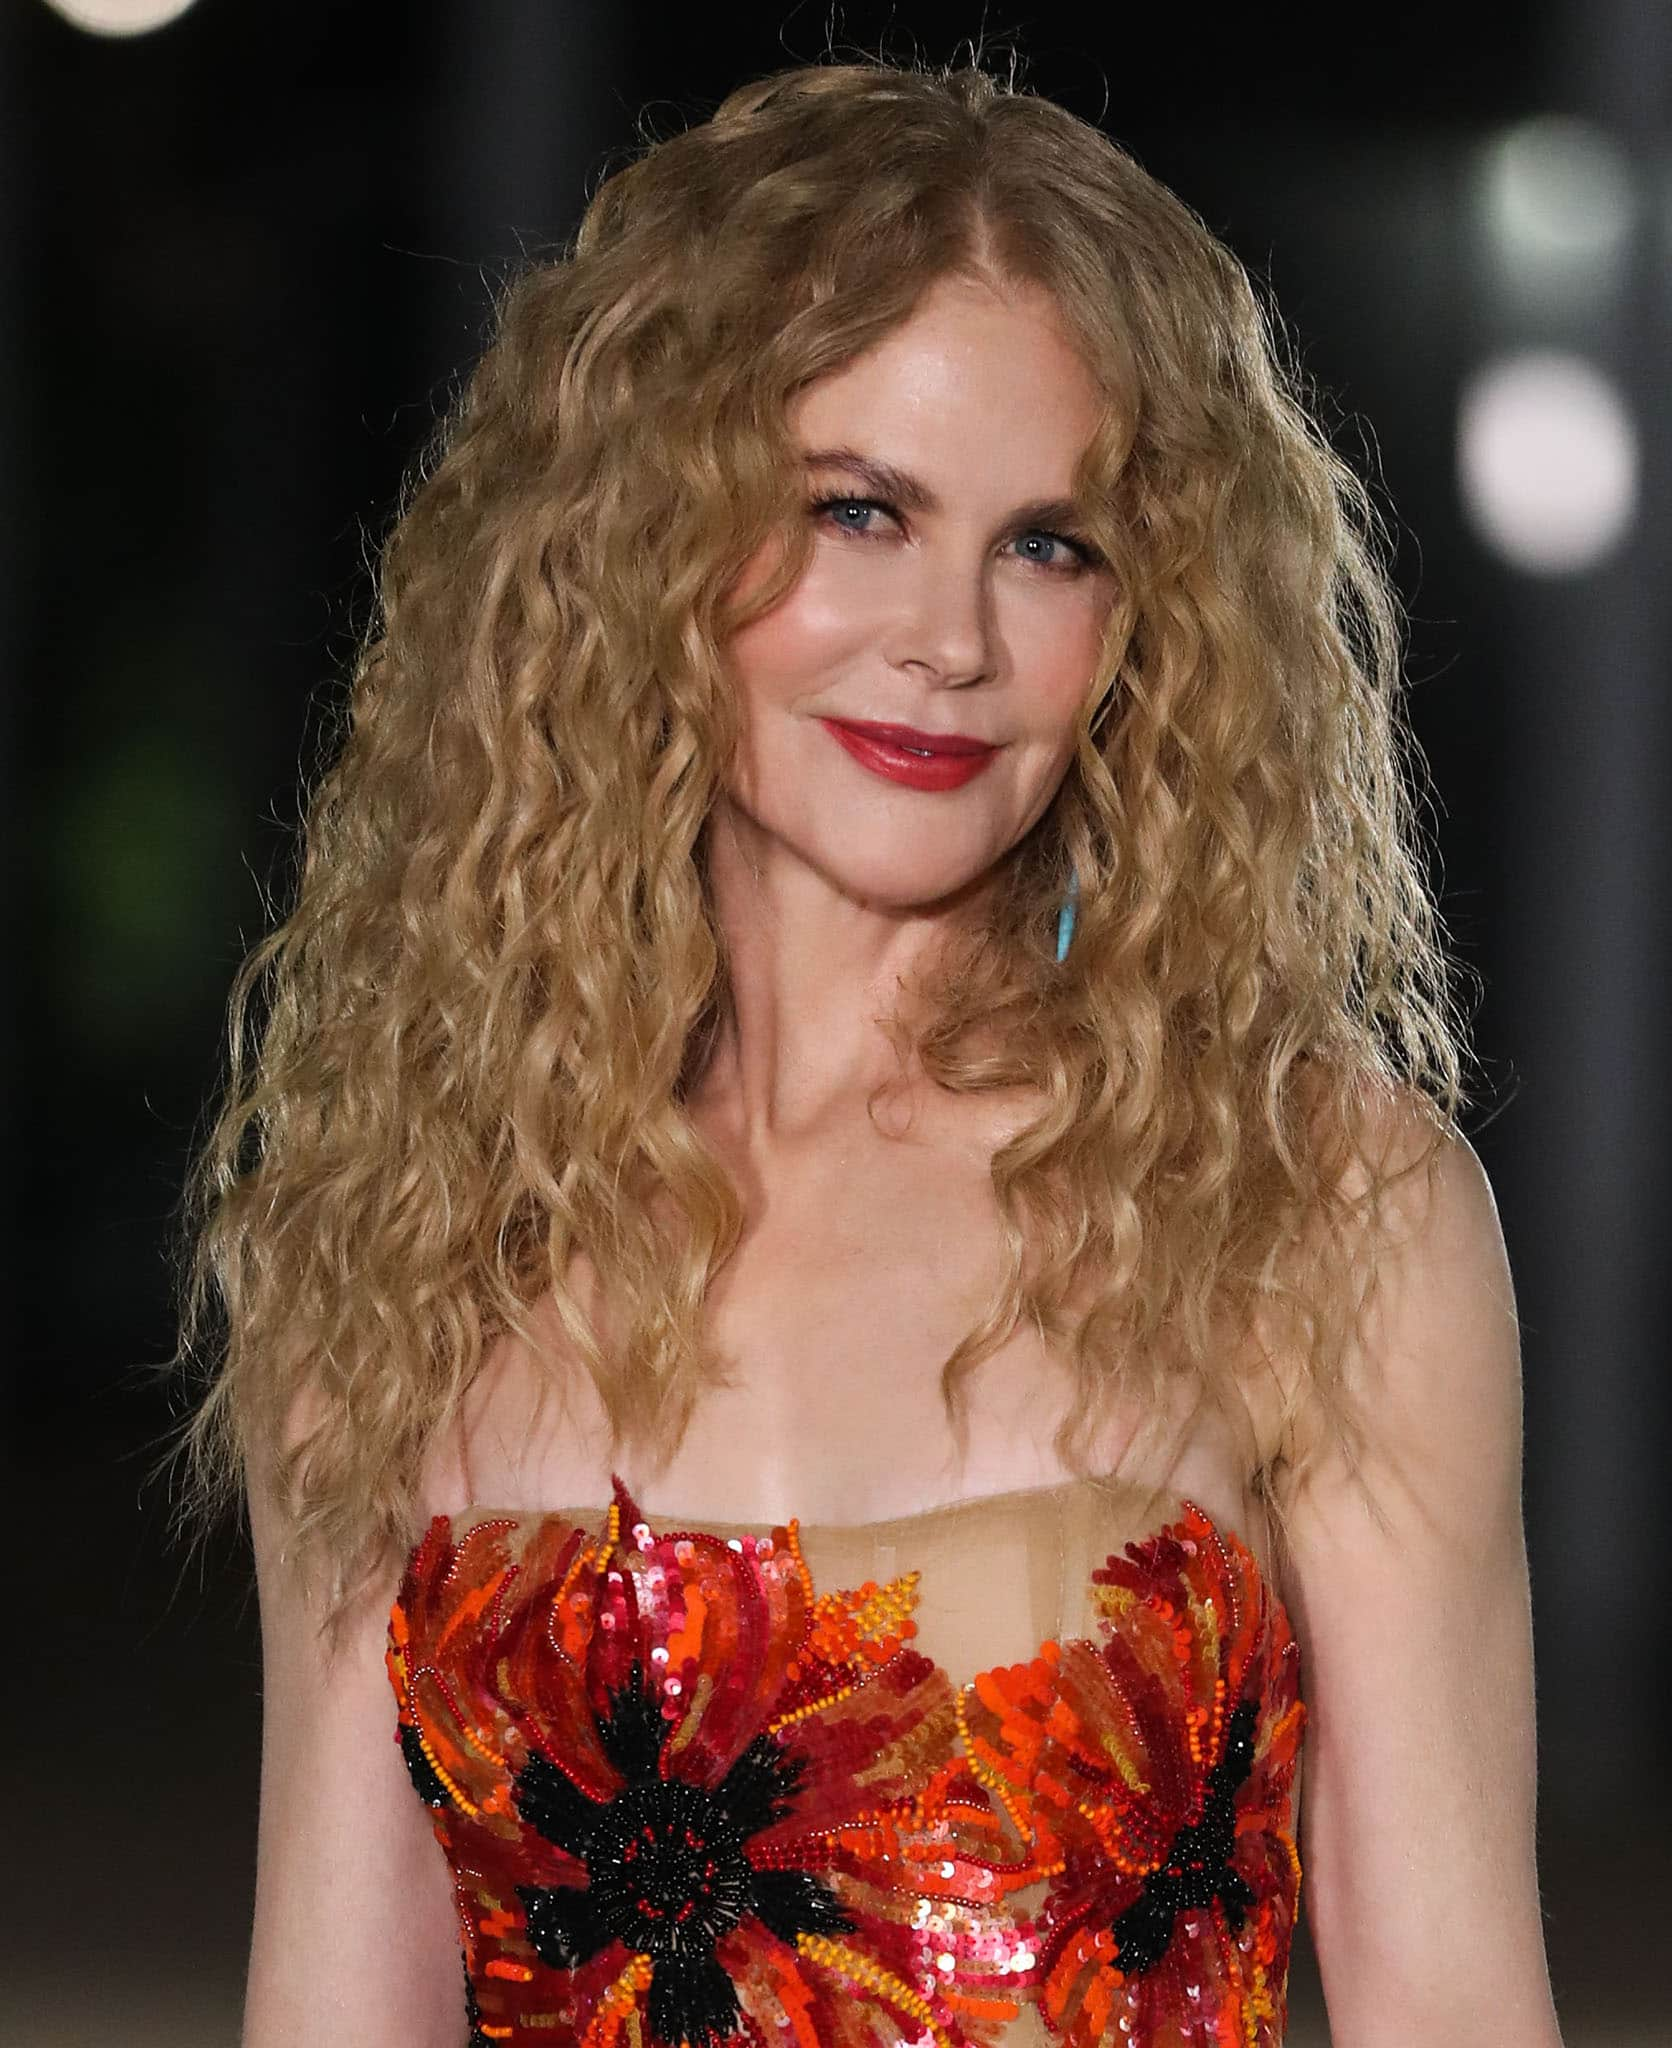 Nicole Kidman brings her natural curls back and glams up with eyeliner and red lipstick